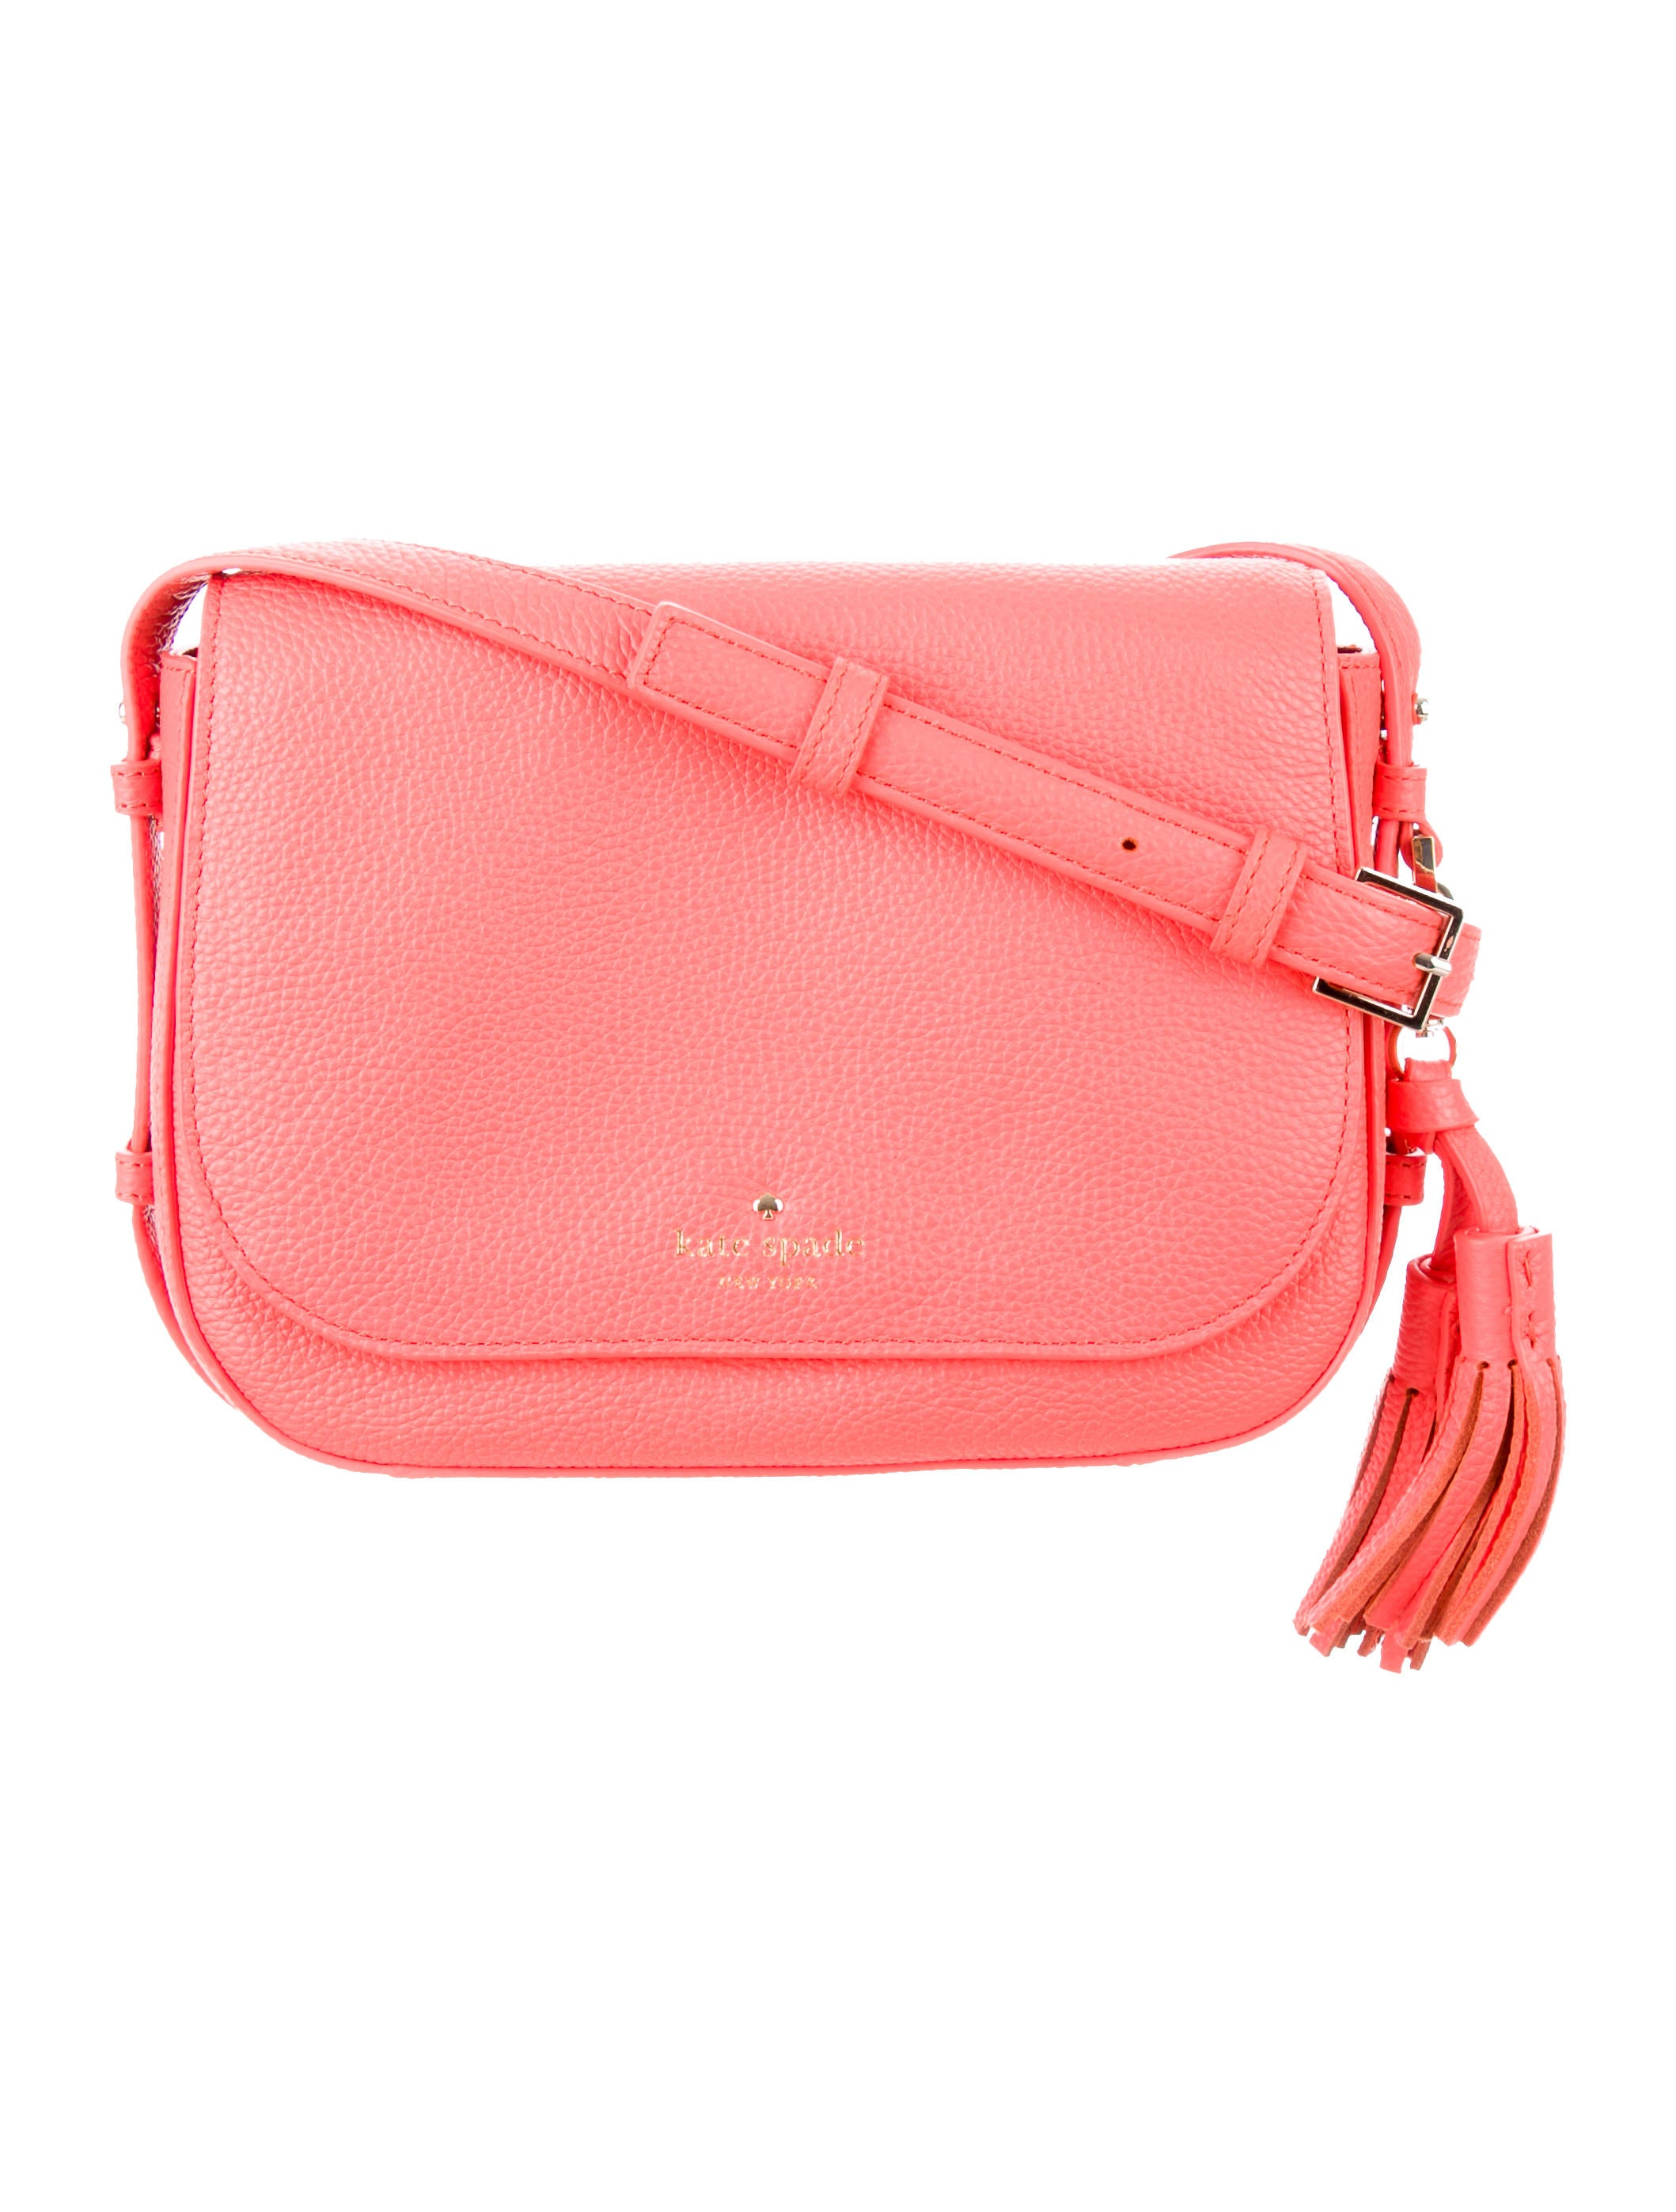 cbfc0b212 Kate Spade New York Orchard Street Penelope Crossbody Bag w/ Tags ...